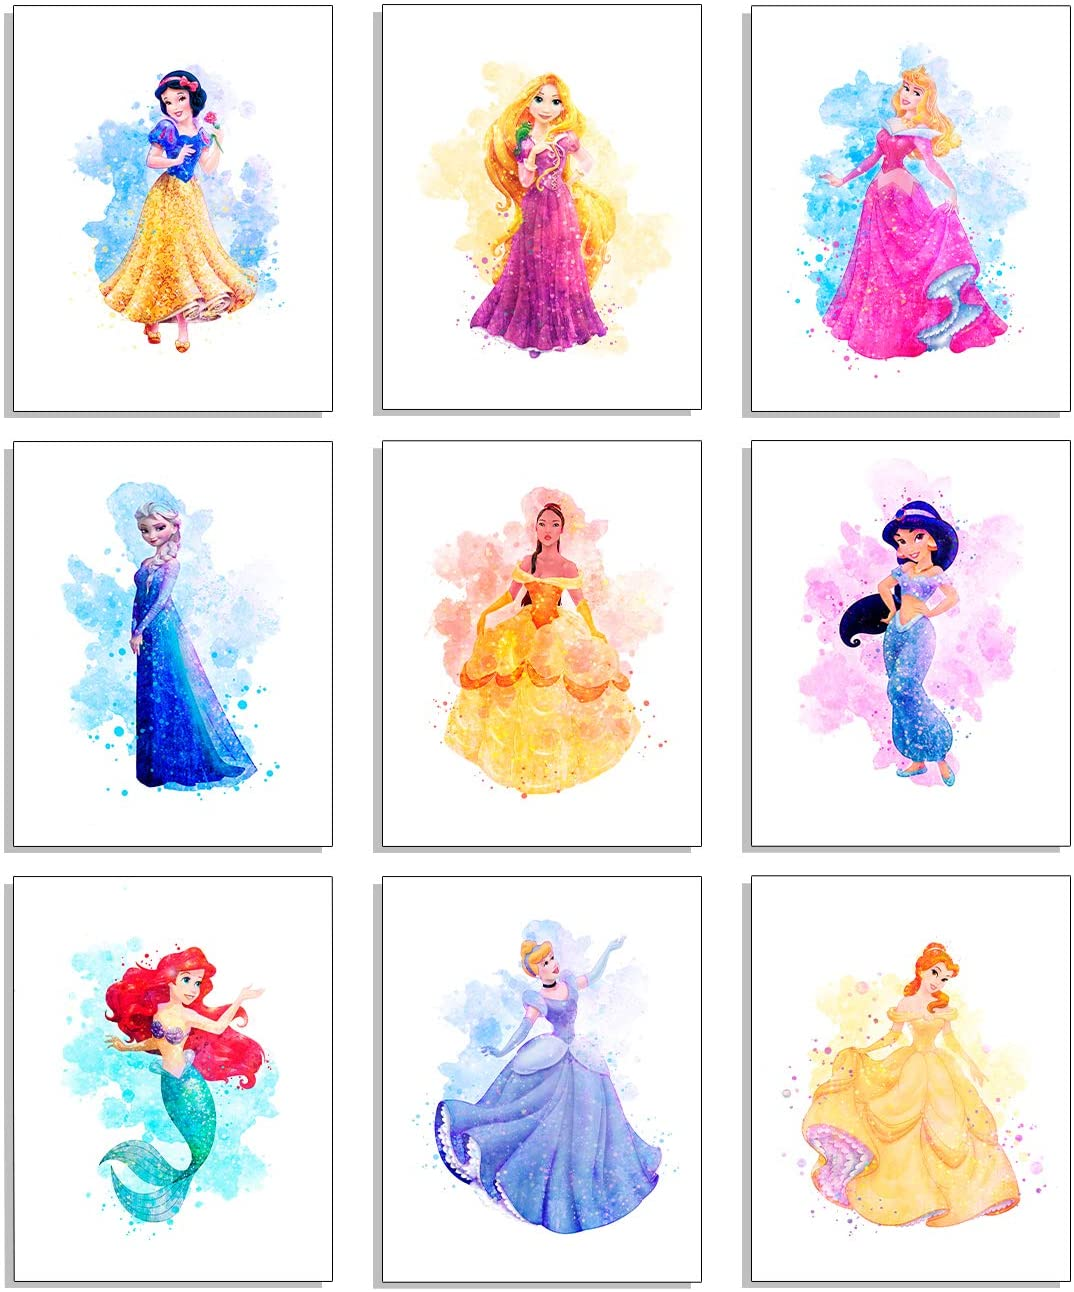 Amazon Com Princess Wall Art Decor Watercolor Prints Unframed Set Of 9 8 Inches X 10 Bedroom Room For Girls Posters